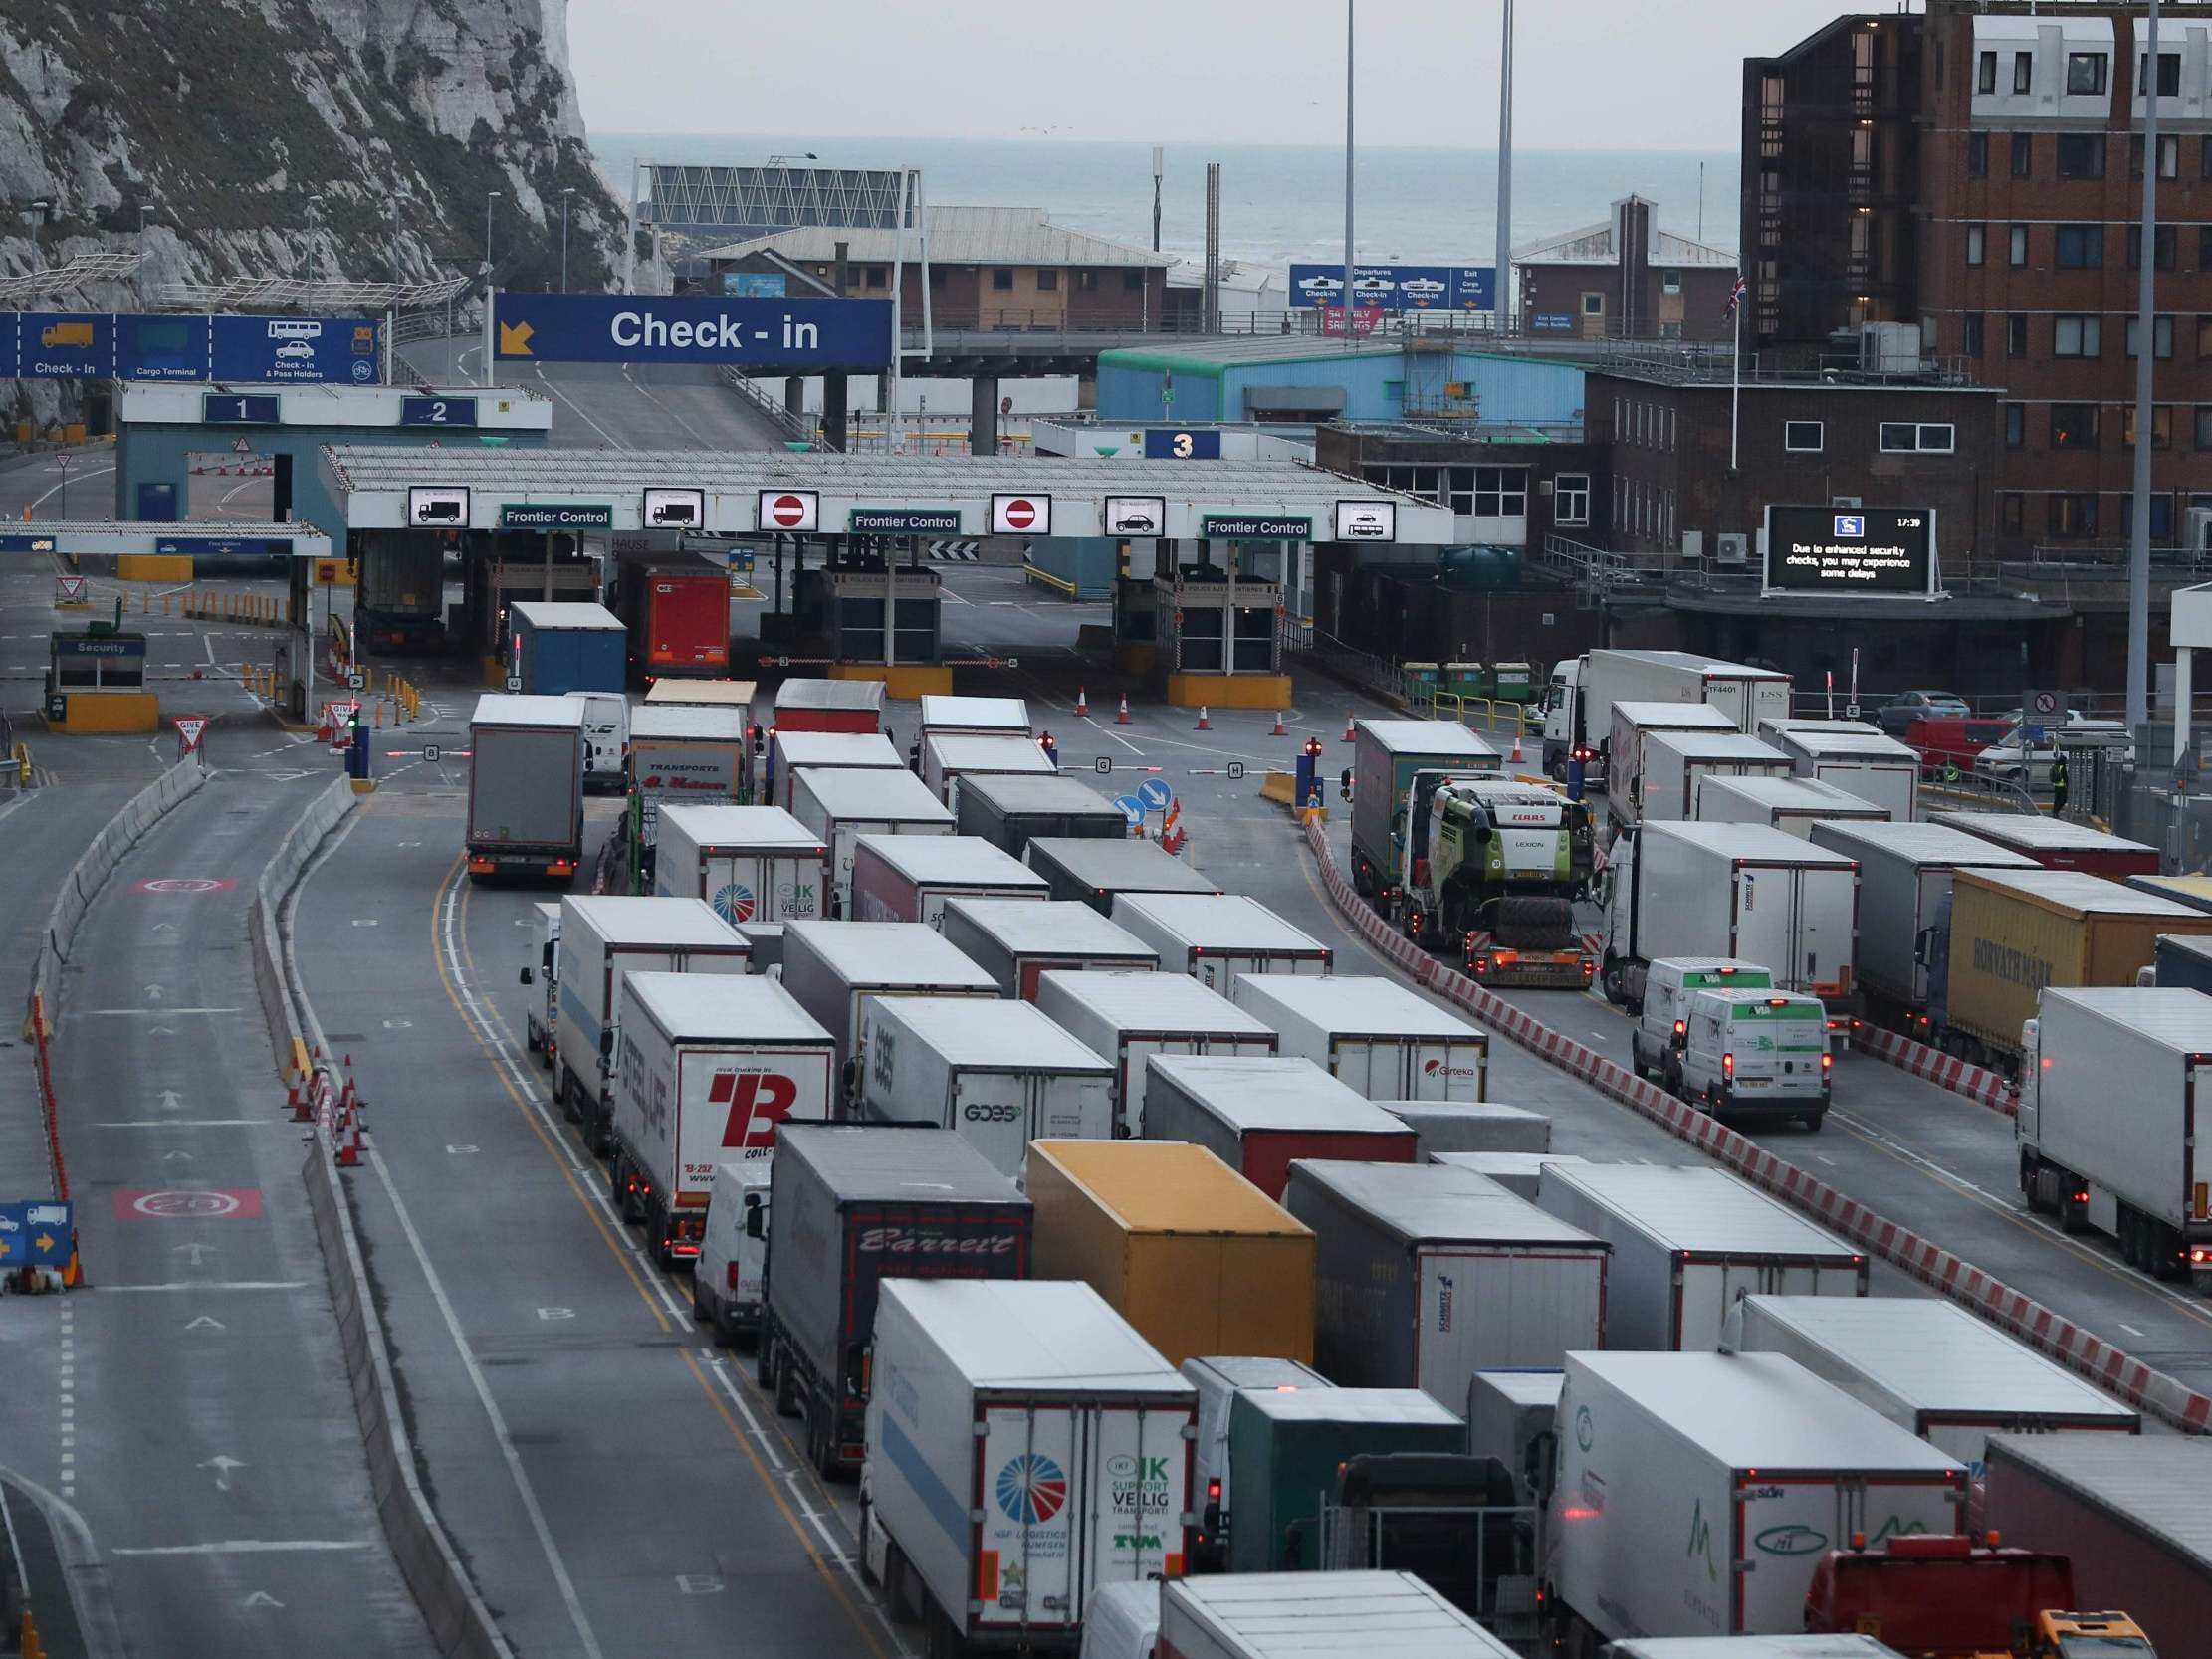 No-deal Brexit: Majority of cross-border businesses unprepared for EU crash-out